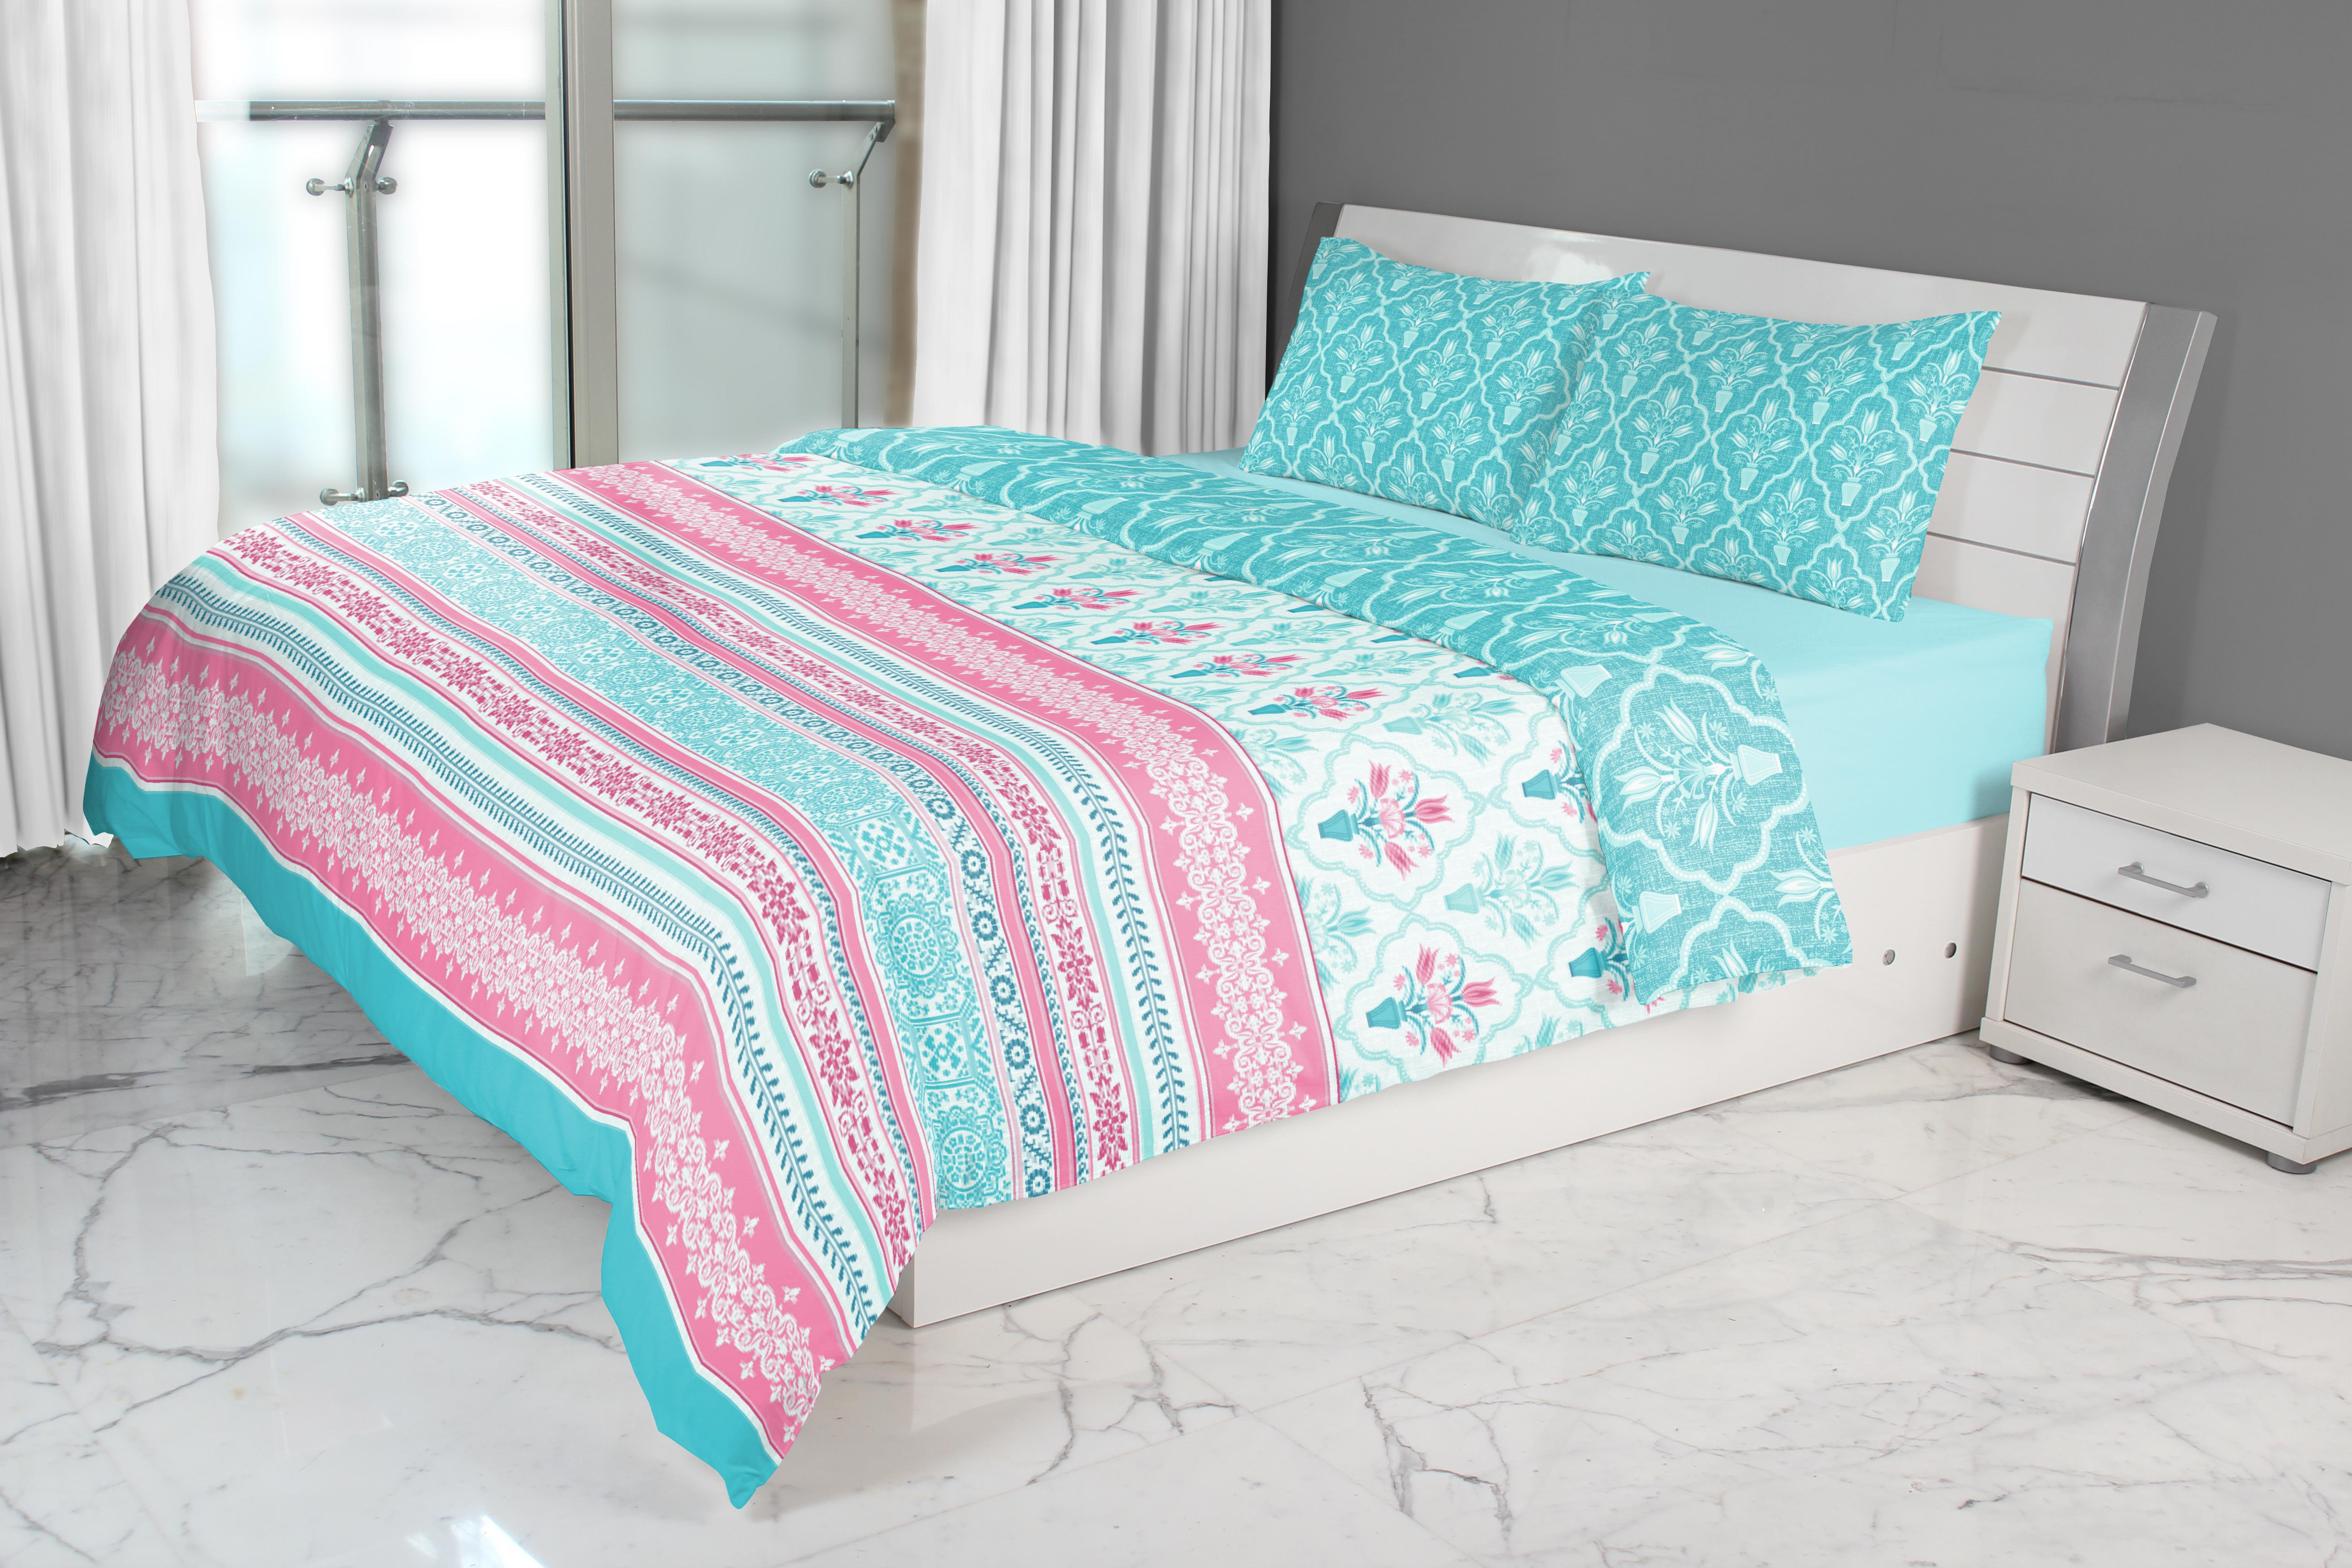 Emilia Double Comforter Turquoise Cotton Comforters in Turquoise Colour by Living Essence